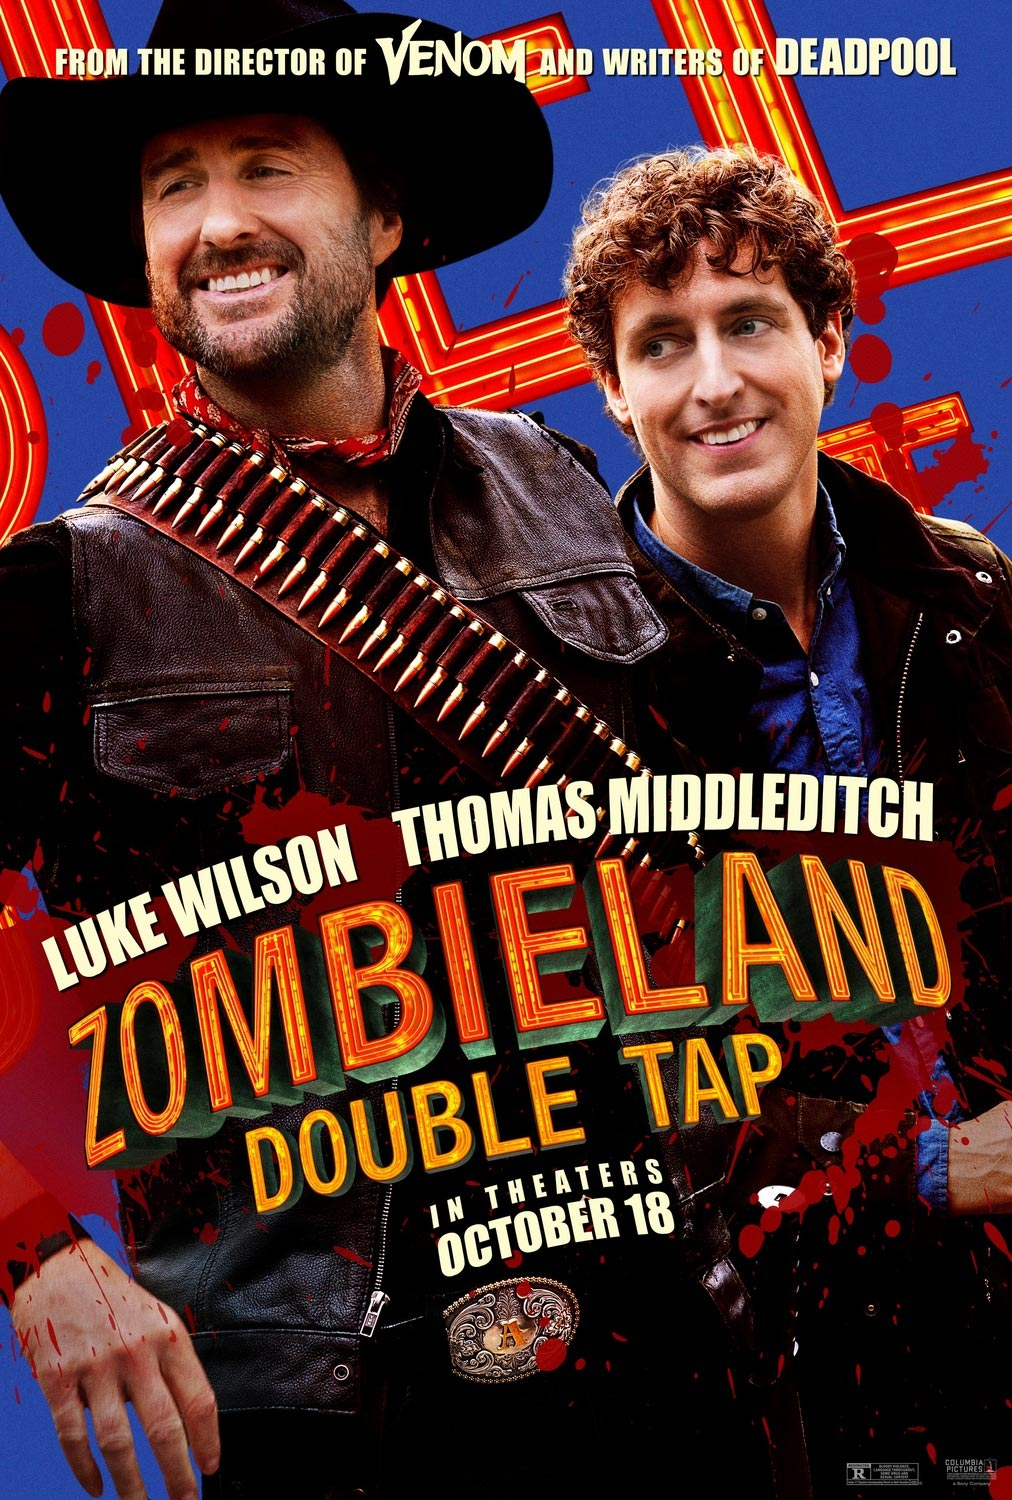 Luke Wilson and Thomas Middleditch Zombieland: Double Tap Poster